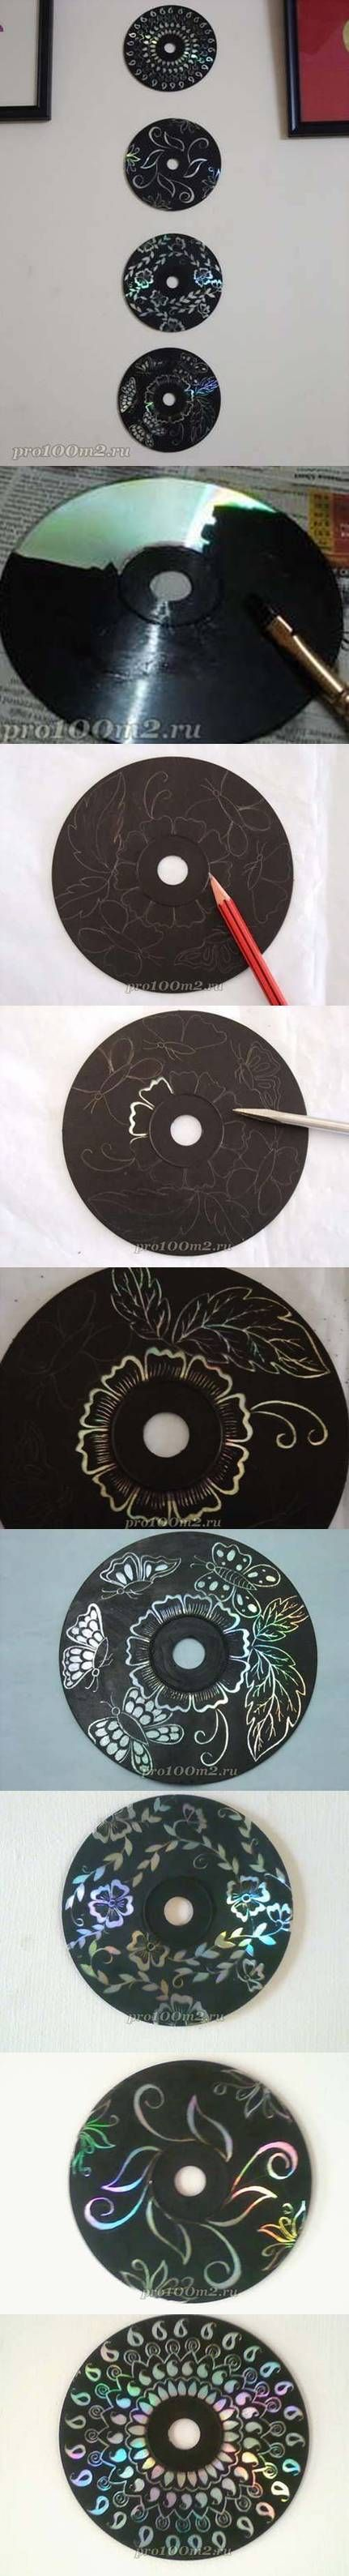 DIY Wall Decoration with CD